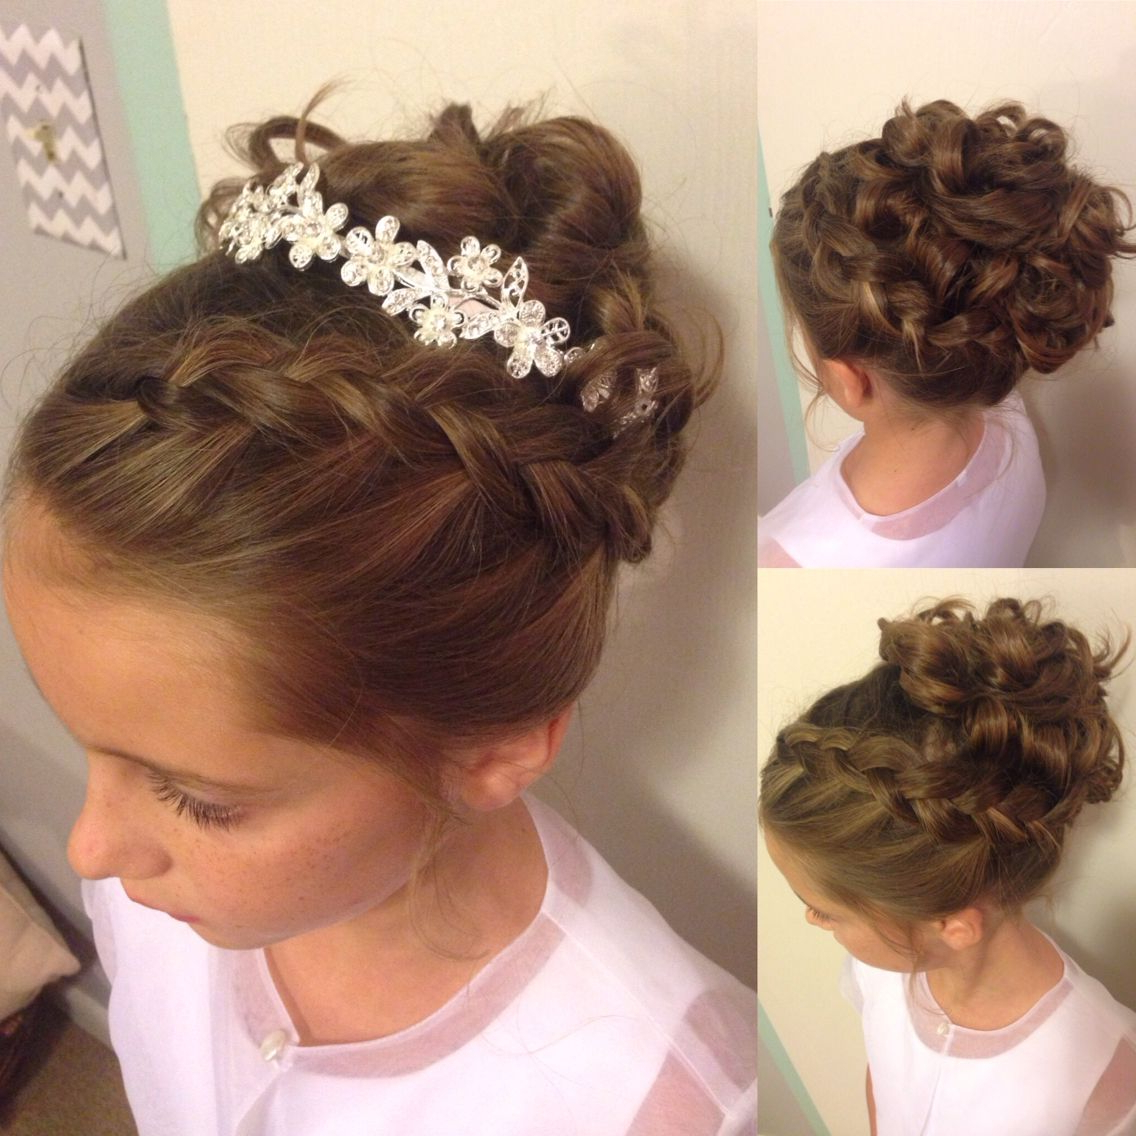 Teanfa 12pcs Magic Doughnut Donut Sticks Rollers Circle Spiral With Well Liked Airy Curly Updos For Wedding (View 8 of 20)